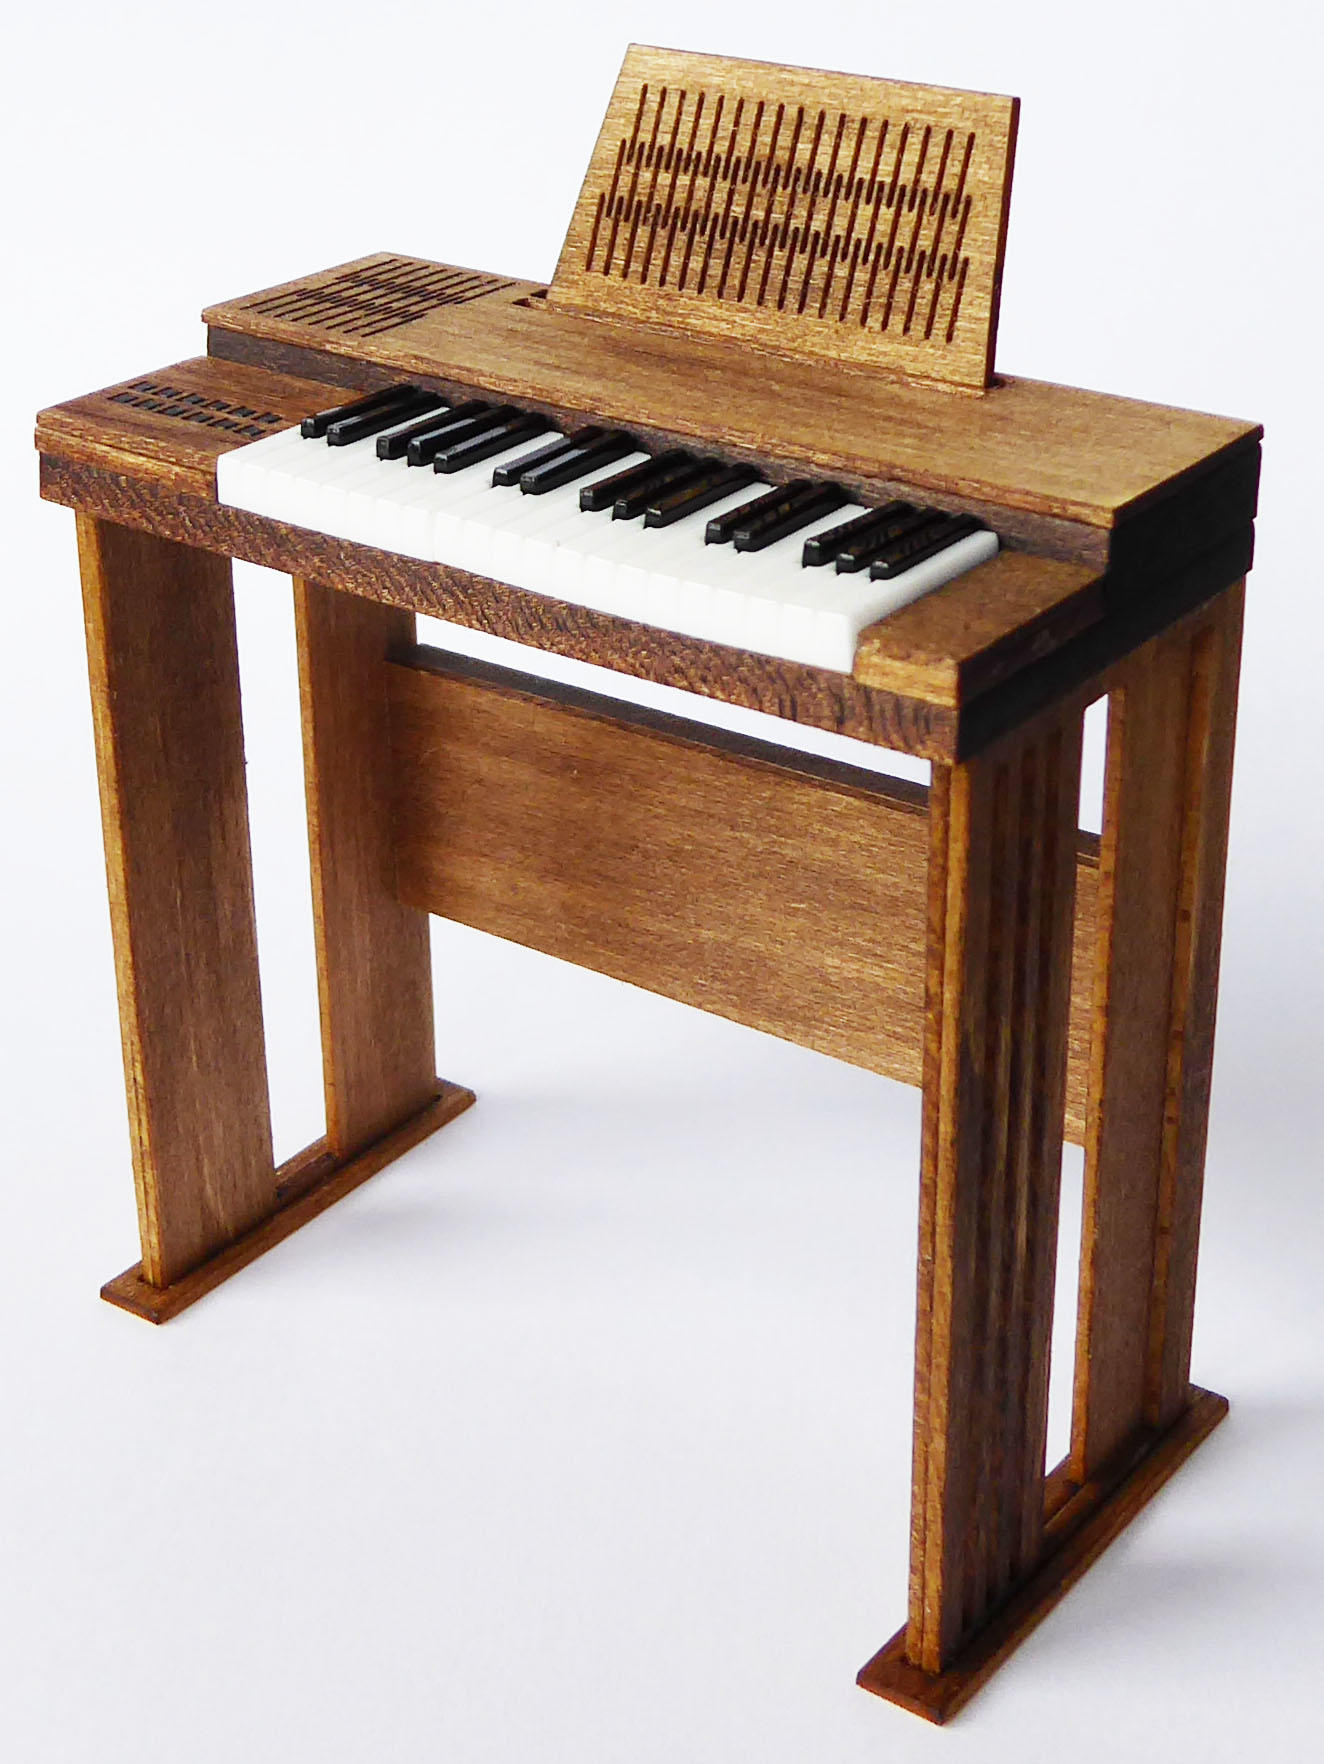 1/24th scale 70s Retro Organ Keyboard Kit